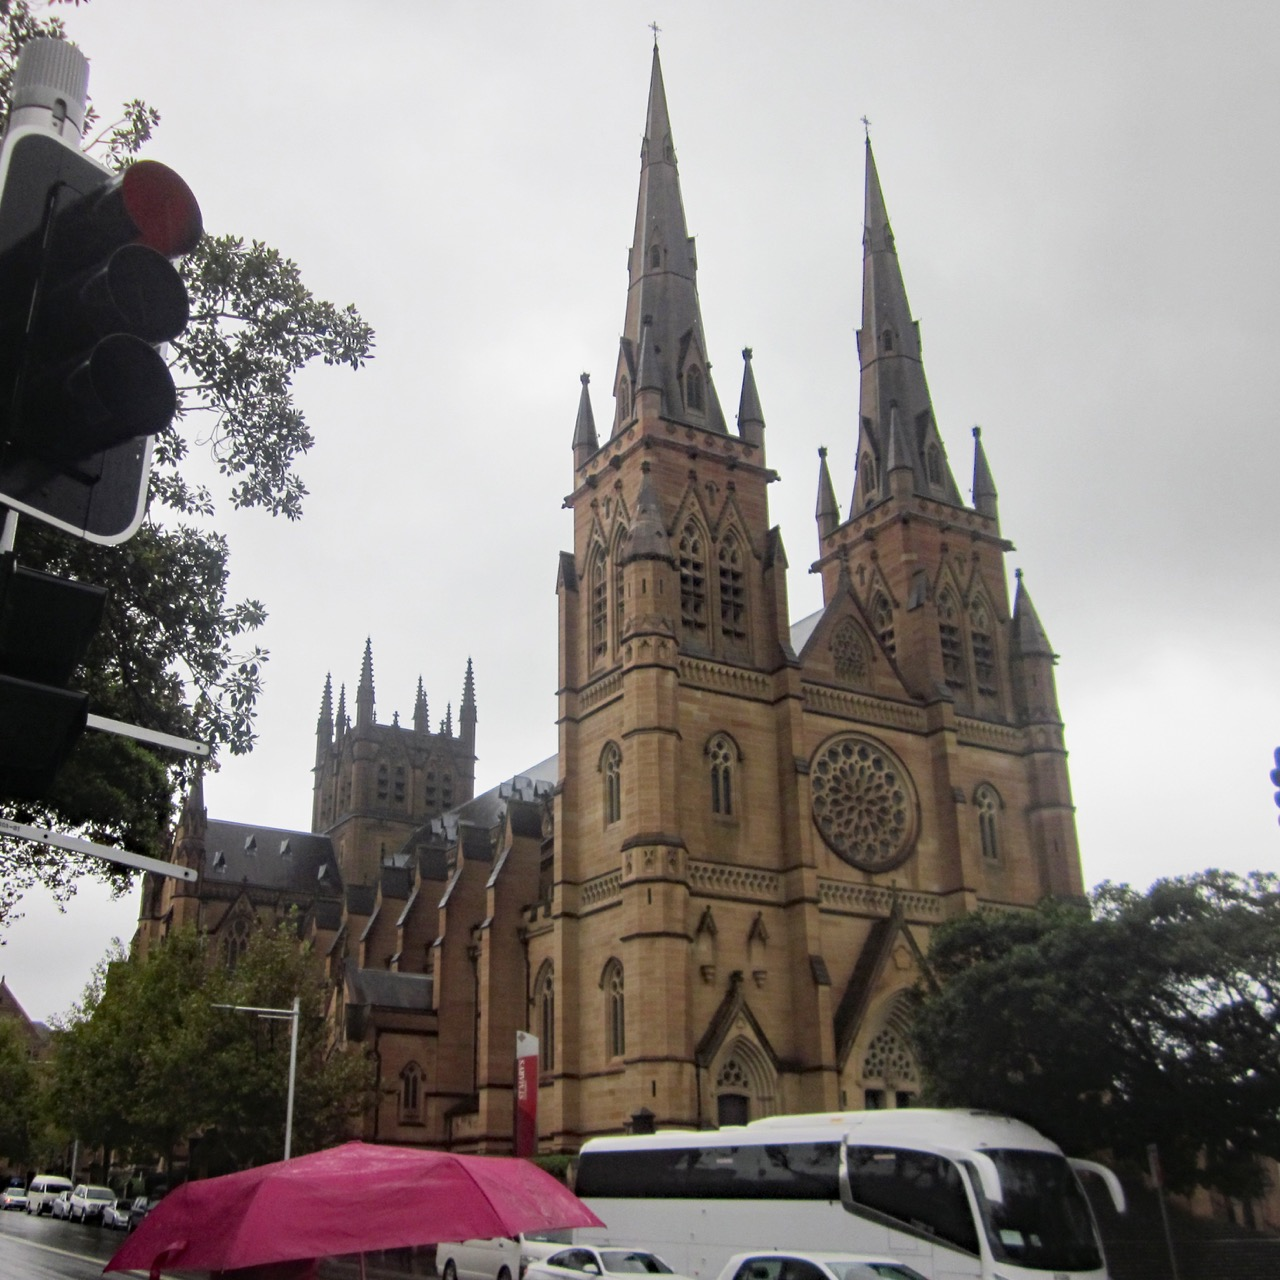 St Mary's Cathedral, exterior view